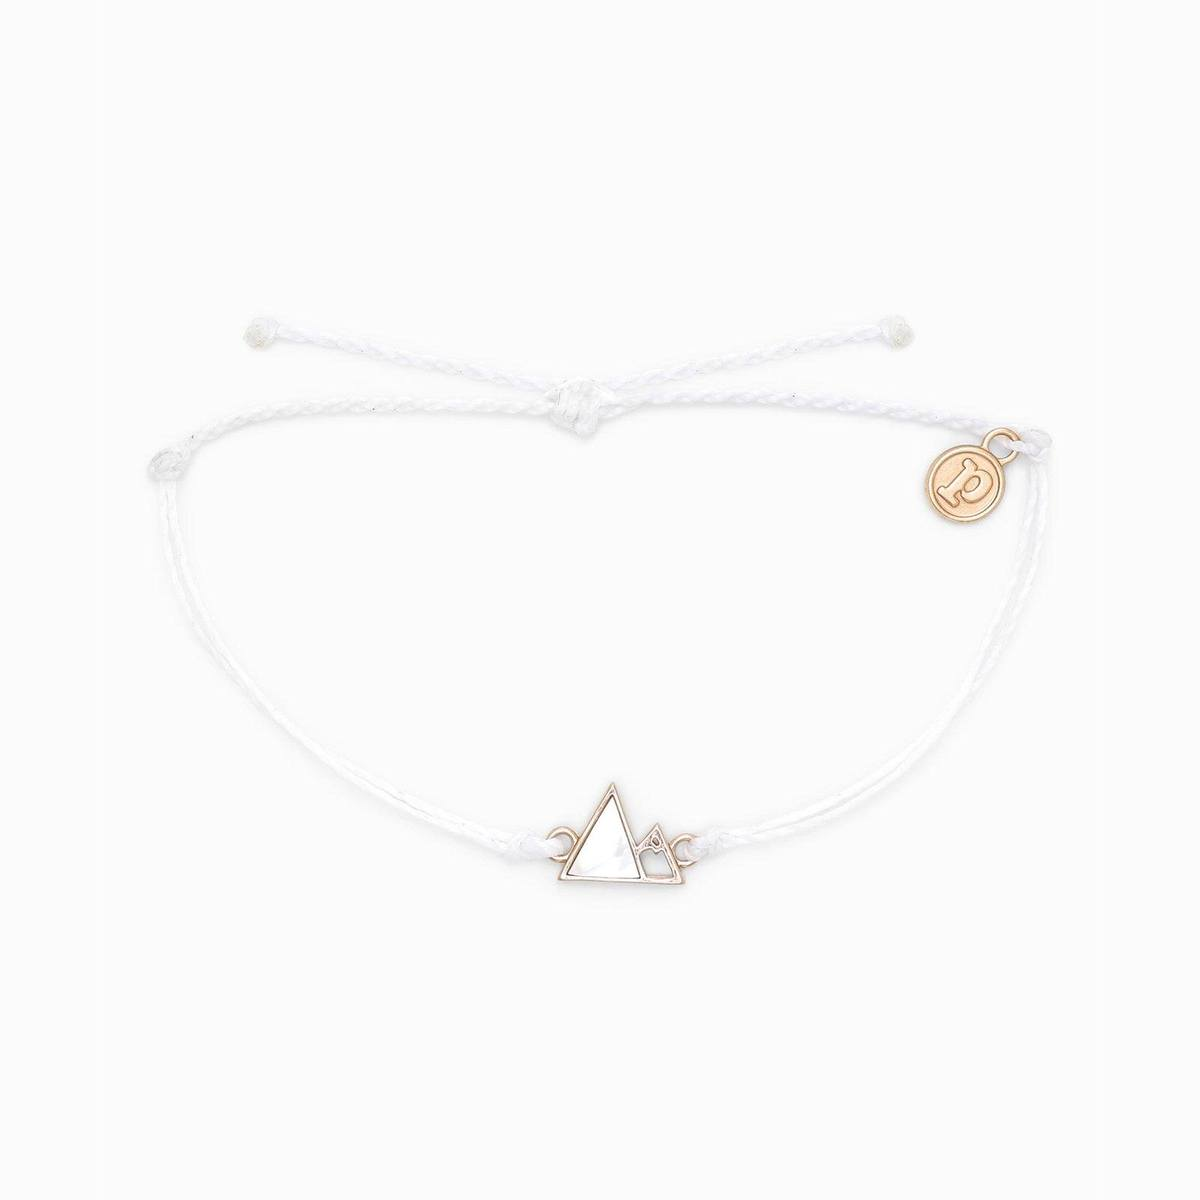 Rose Gold Gem Mountain Charm Bracelet by Pura Vida - White